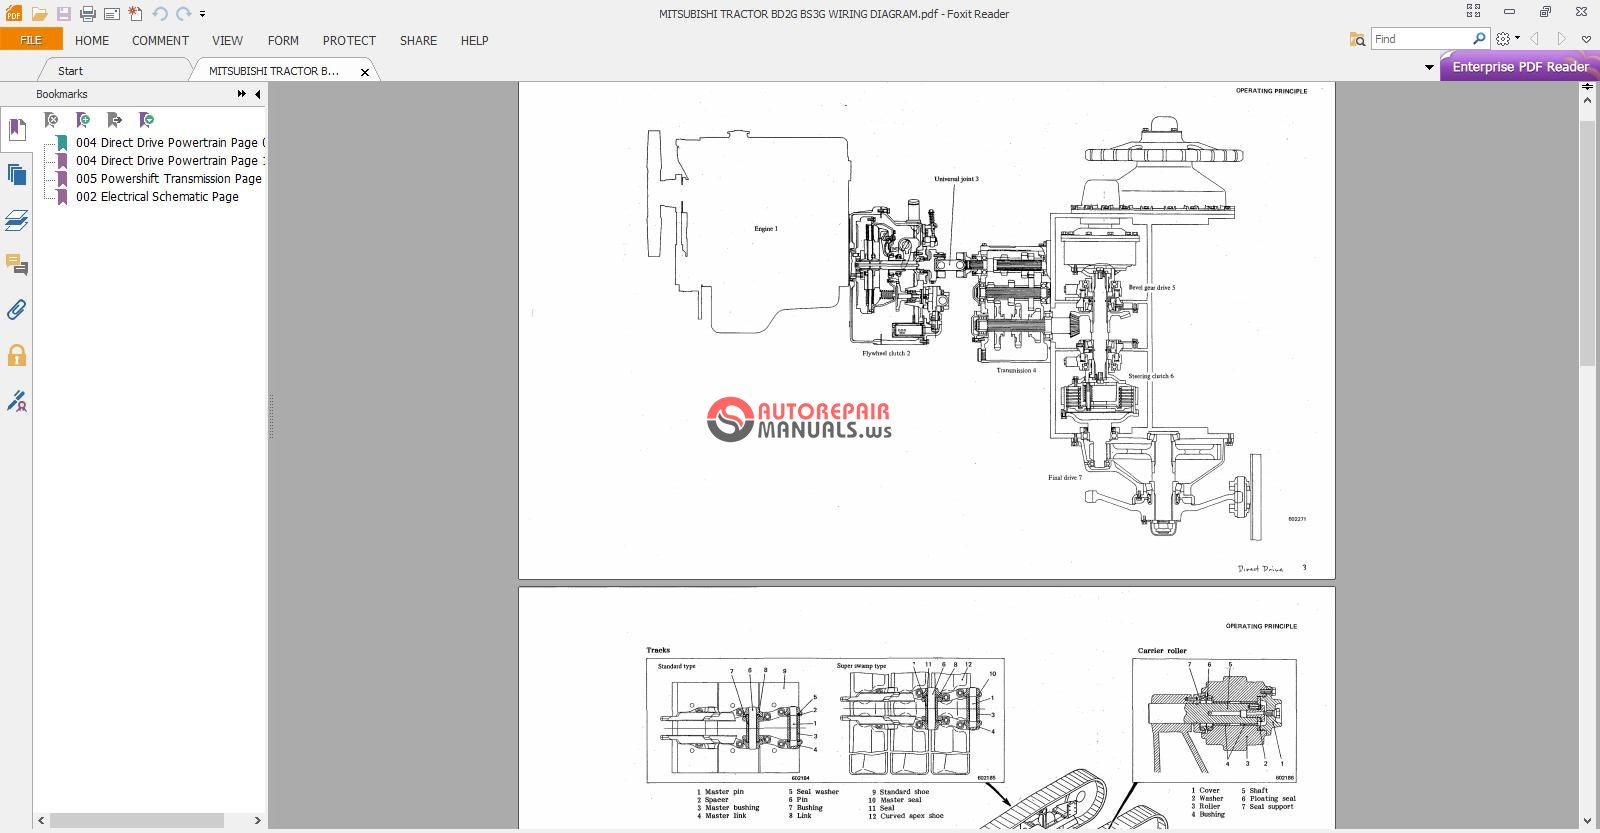 MITSUBISHI TRACTOR BD2G BS3G WIRING DIAGRAM Auto Repair